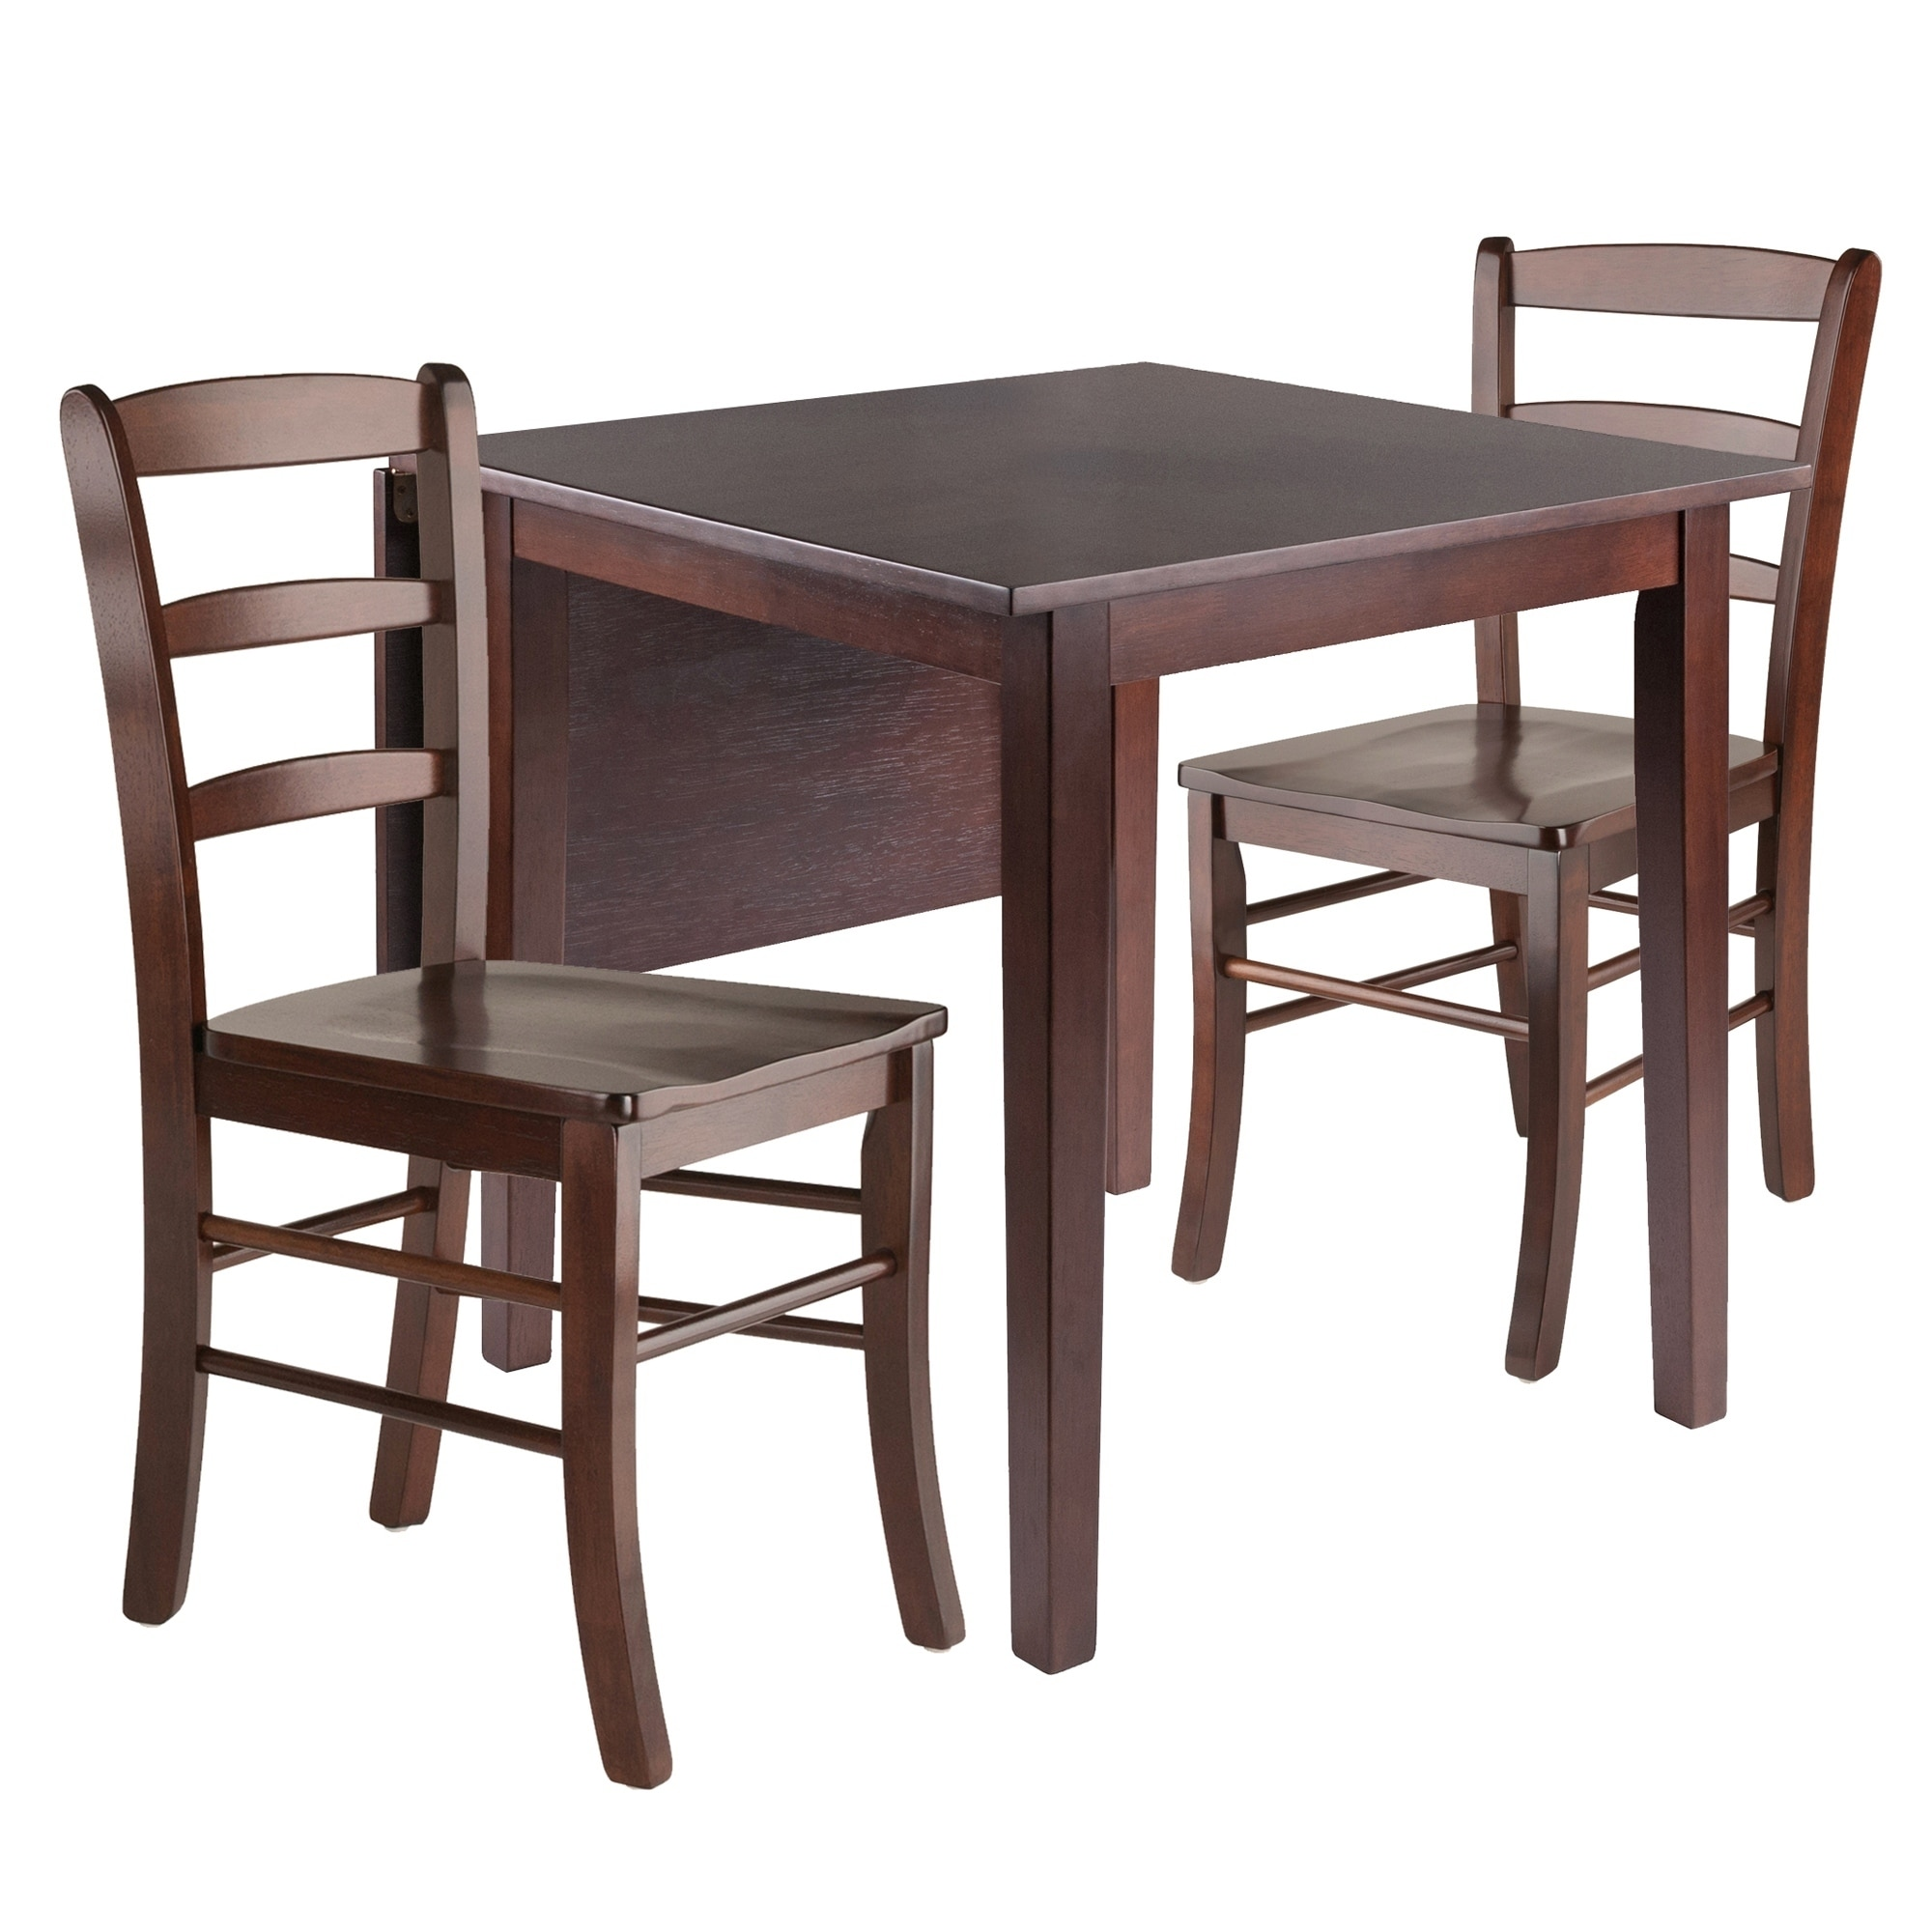 Image of: Shop Black Friday Deals On Perrone 3pc Drop Leaf Dining Table Set With Ladder Back Chair Overstock 29338126